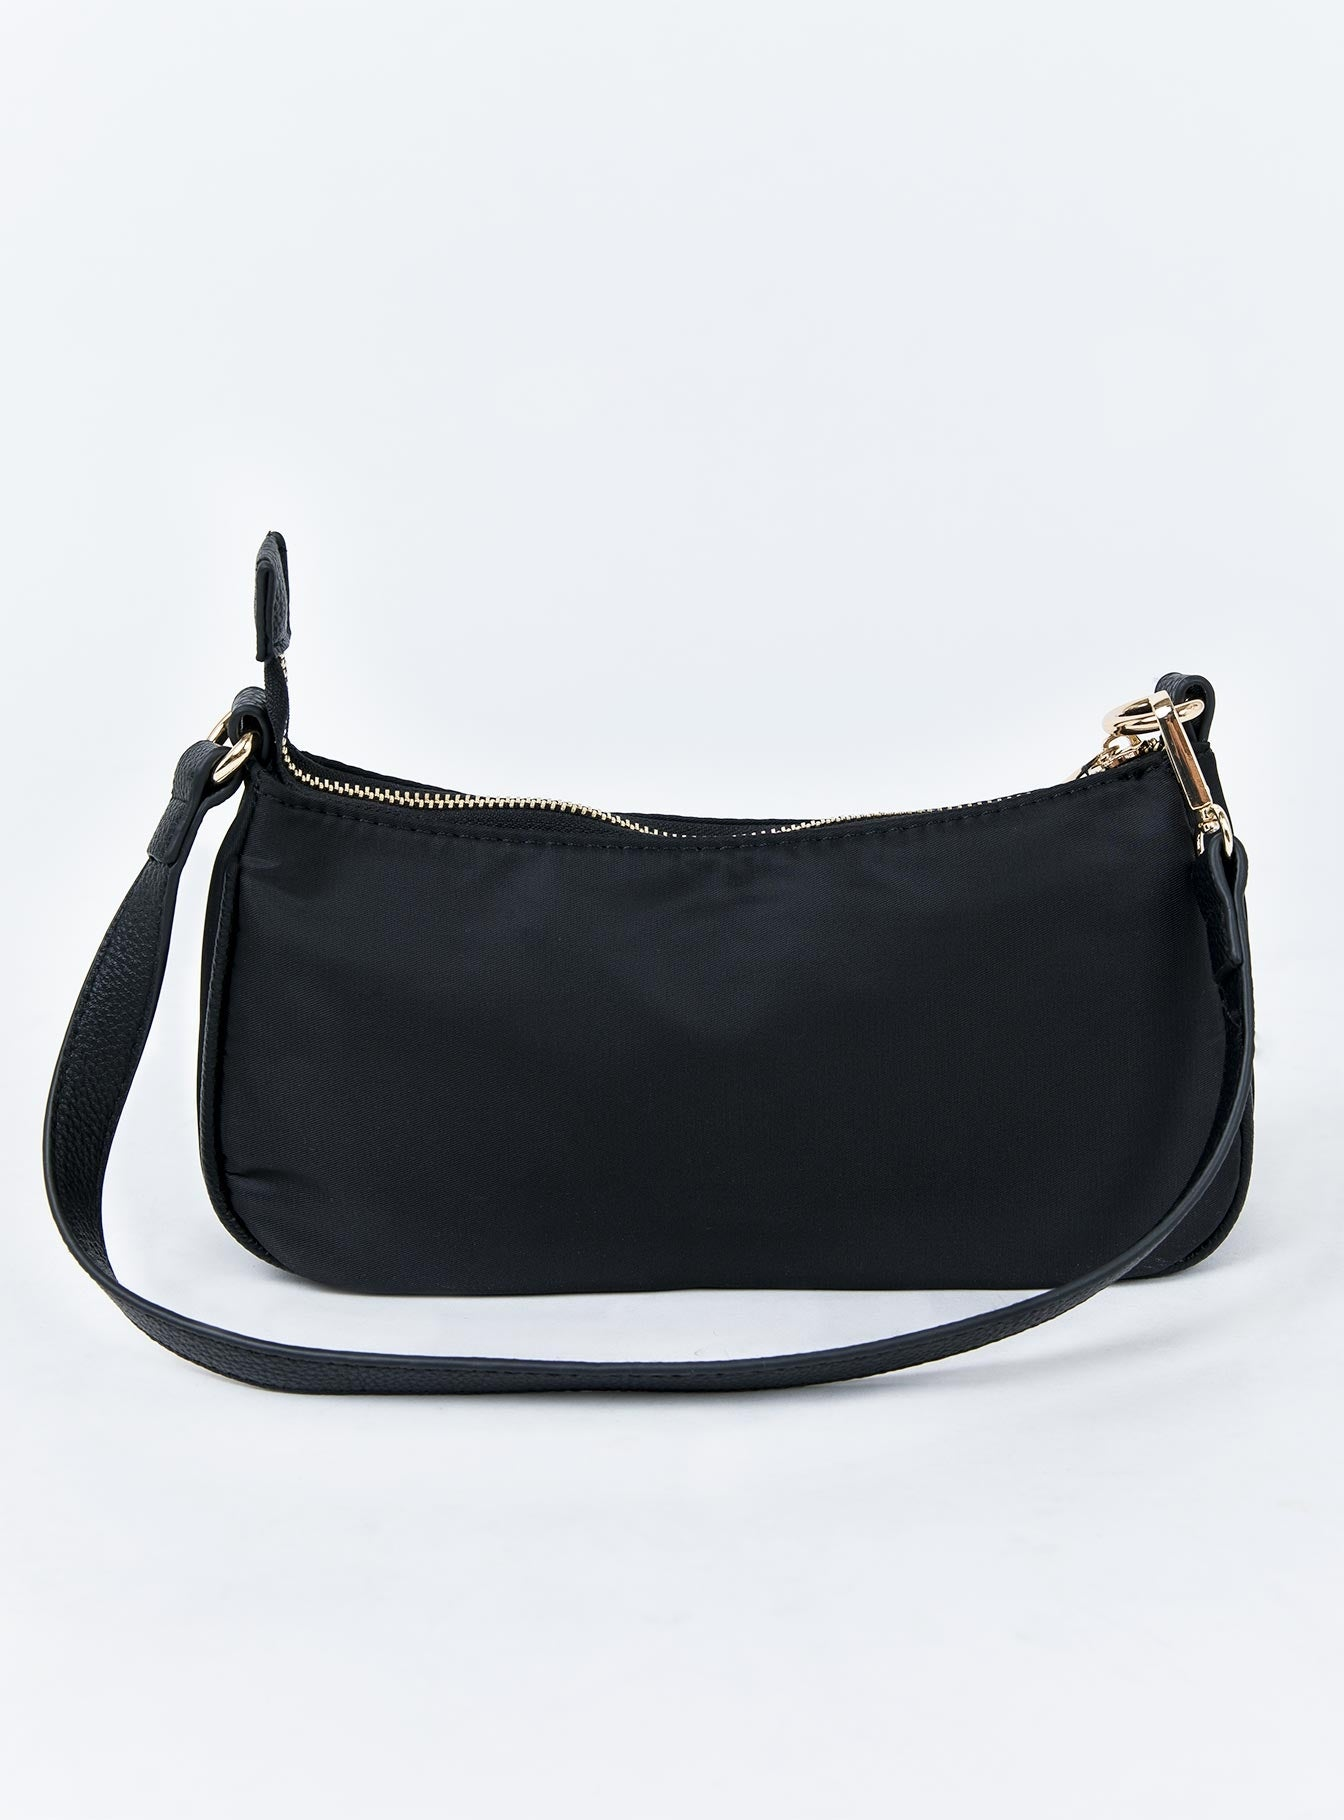 Peta & Jain Piper Bag Black Nylon